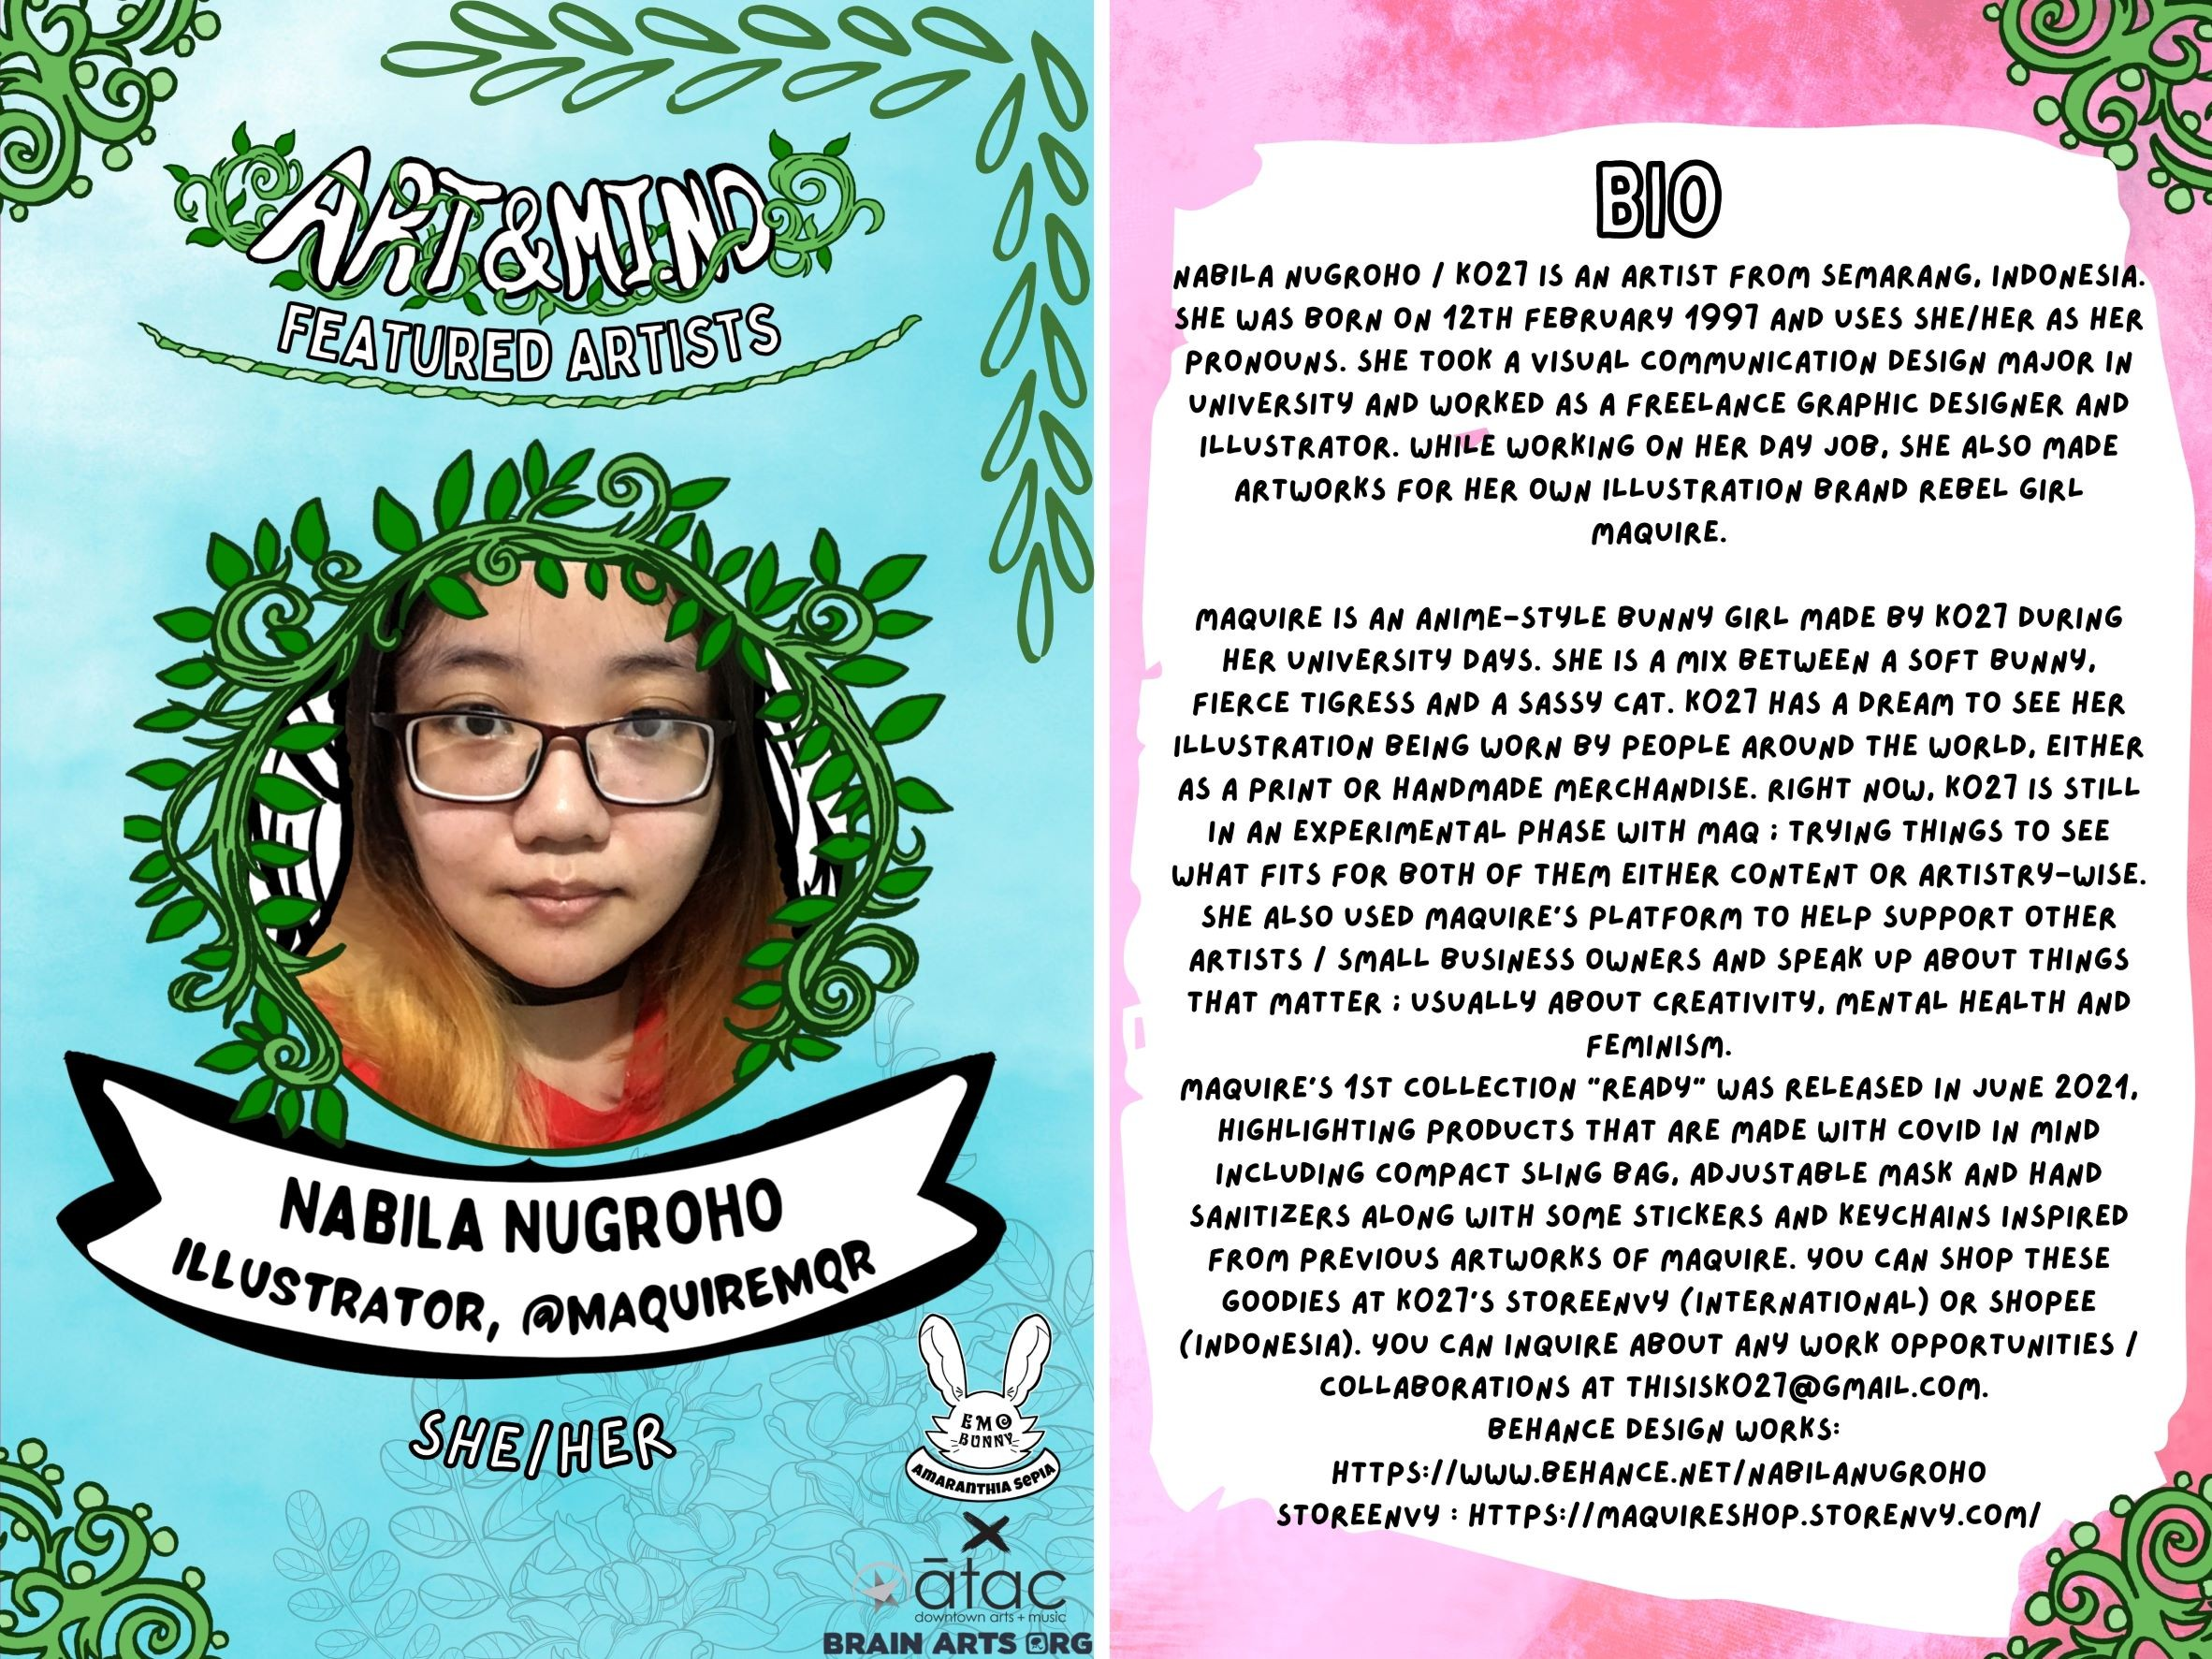 """Featured Artist: Nabila Nugroho / K027 is an artist from Semarang, Indonesia. She was born on 12th February 1997 and uses she/her as her pronouns. She took a Visual Communication Design major in university and worked as a freelance graphic designer and illustrator. While working on her day job, she also made artworks for her own illustration brand Rebel Girl Maquire.   Maquire is an anime-style bunny girl made by K027 during her university days. She is a mix between a soft bunny, fierce tigress and a sassy cat. K027 has a dream to see her illustration being worn by people around the world, either as a print or handmade merchandise. Right now, K027 is still in an experimental phase with Maq ; trying things to see what fits for both of them either content or artistry-wise. She also used Maquire's platform to help support other artists / small business owners and speak up about things that matter ; usually about creativity, mental health and feminism. Maquire's 1st collection """"Ready"""" was released in June 2021, highlighting products that are made with Covid in mind including compact sling bag, adjustable mask and hand sanitizers along with some stickers and keychains inspired from previous artworks of Maquire. You can shop these goodies at K027's Storeenvy (international) or Shopee (Indonesia). You can inquire about any work opportunities / collaborations at thisisk027@gmail.com.   BEHANCE Design Works: https://www.behance.net/nabilanugroho STOREENVY : https://maquireshop.storenvy.com/ @MaquireMQR"""